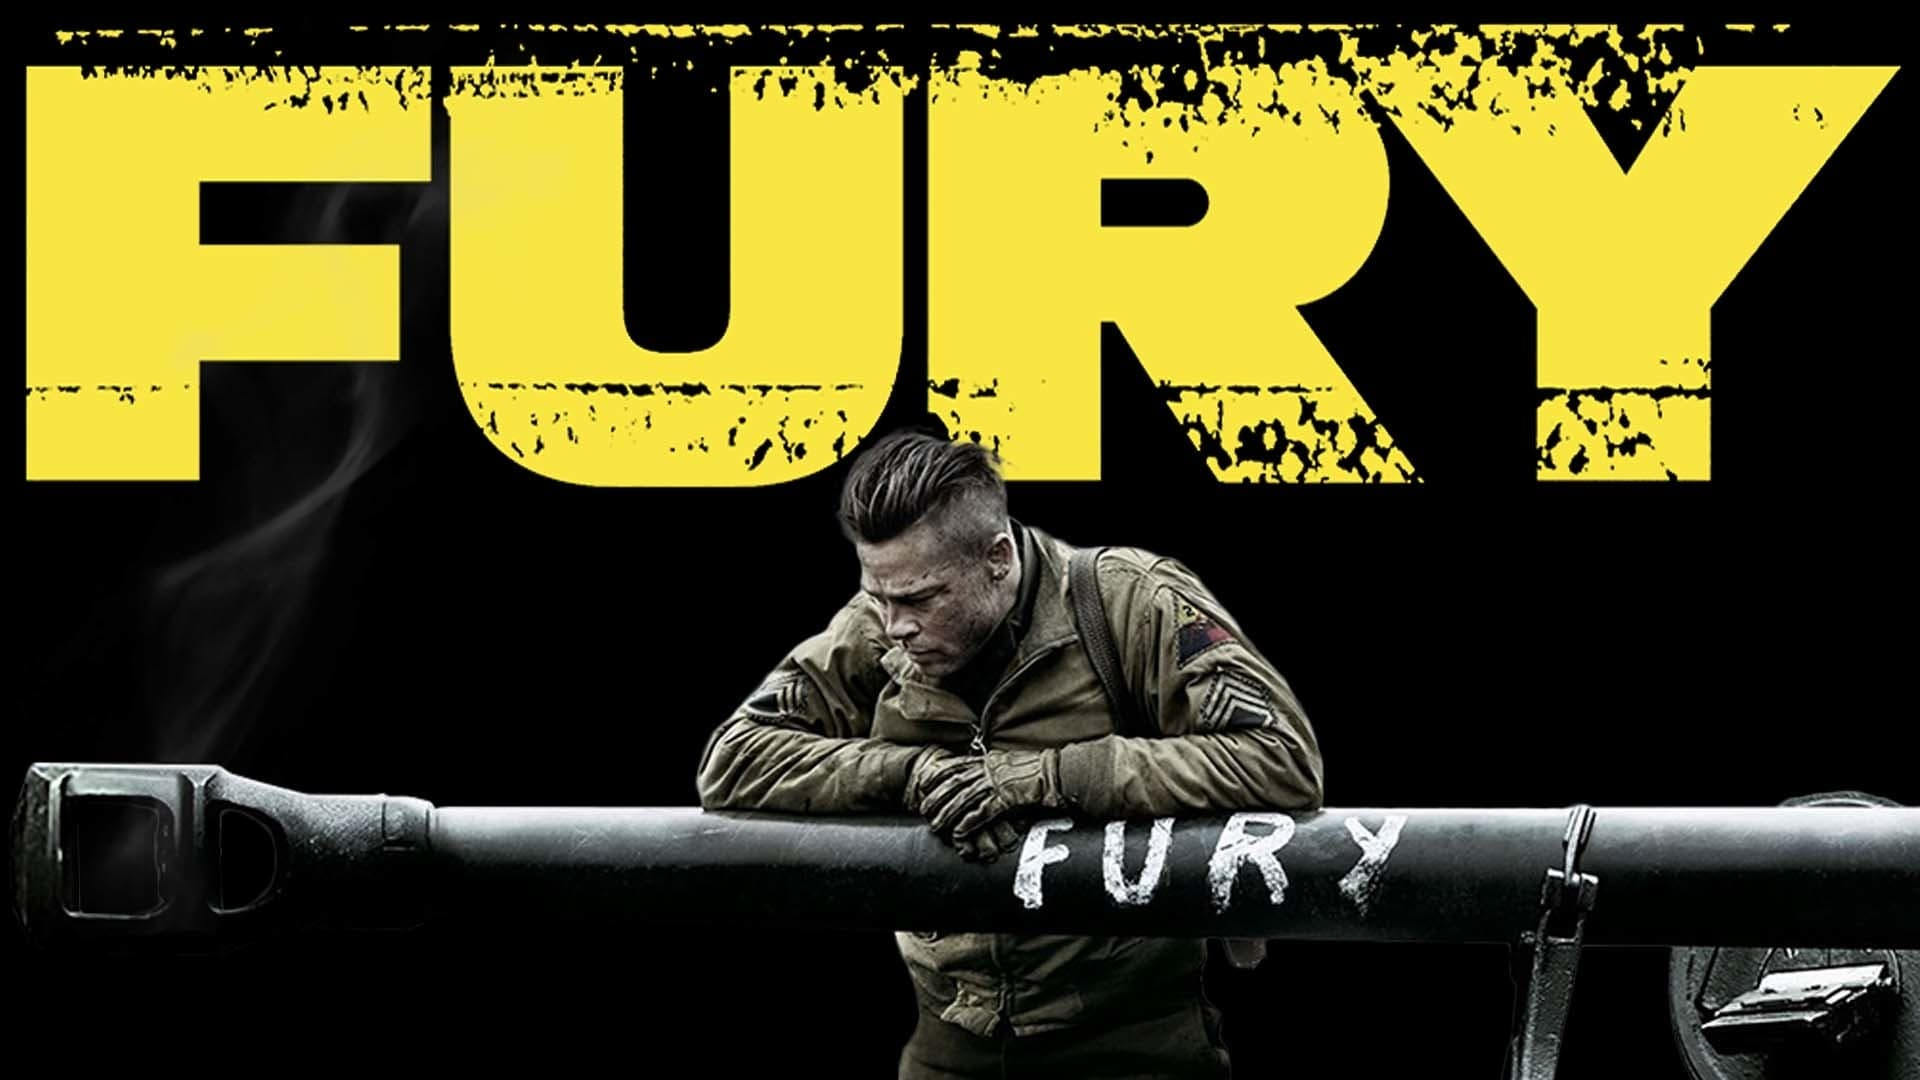 Watch Fury (2014) Solar Movie Online - Solar Movies